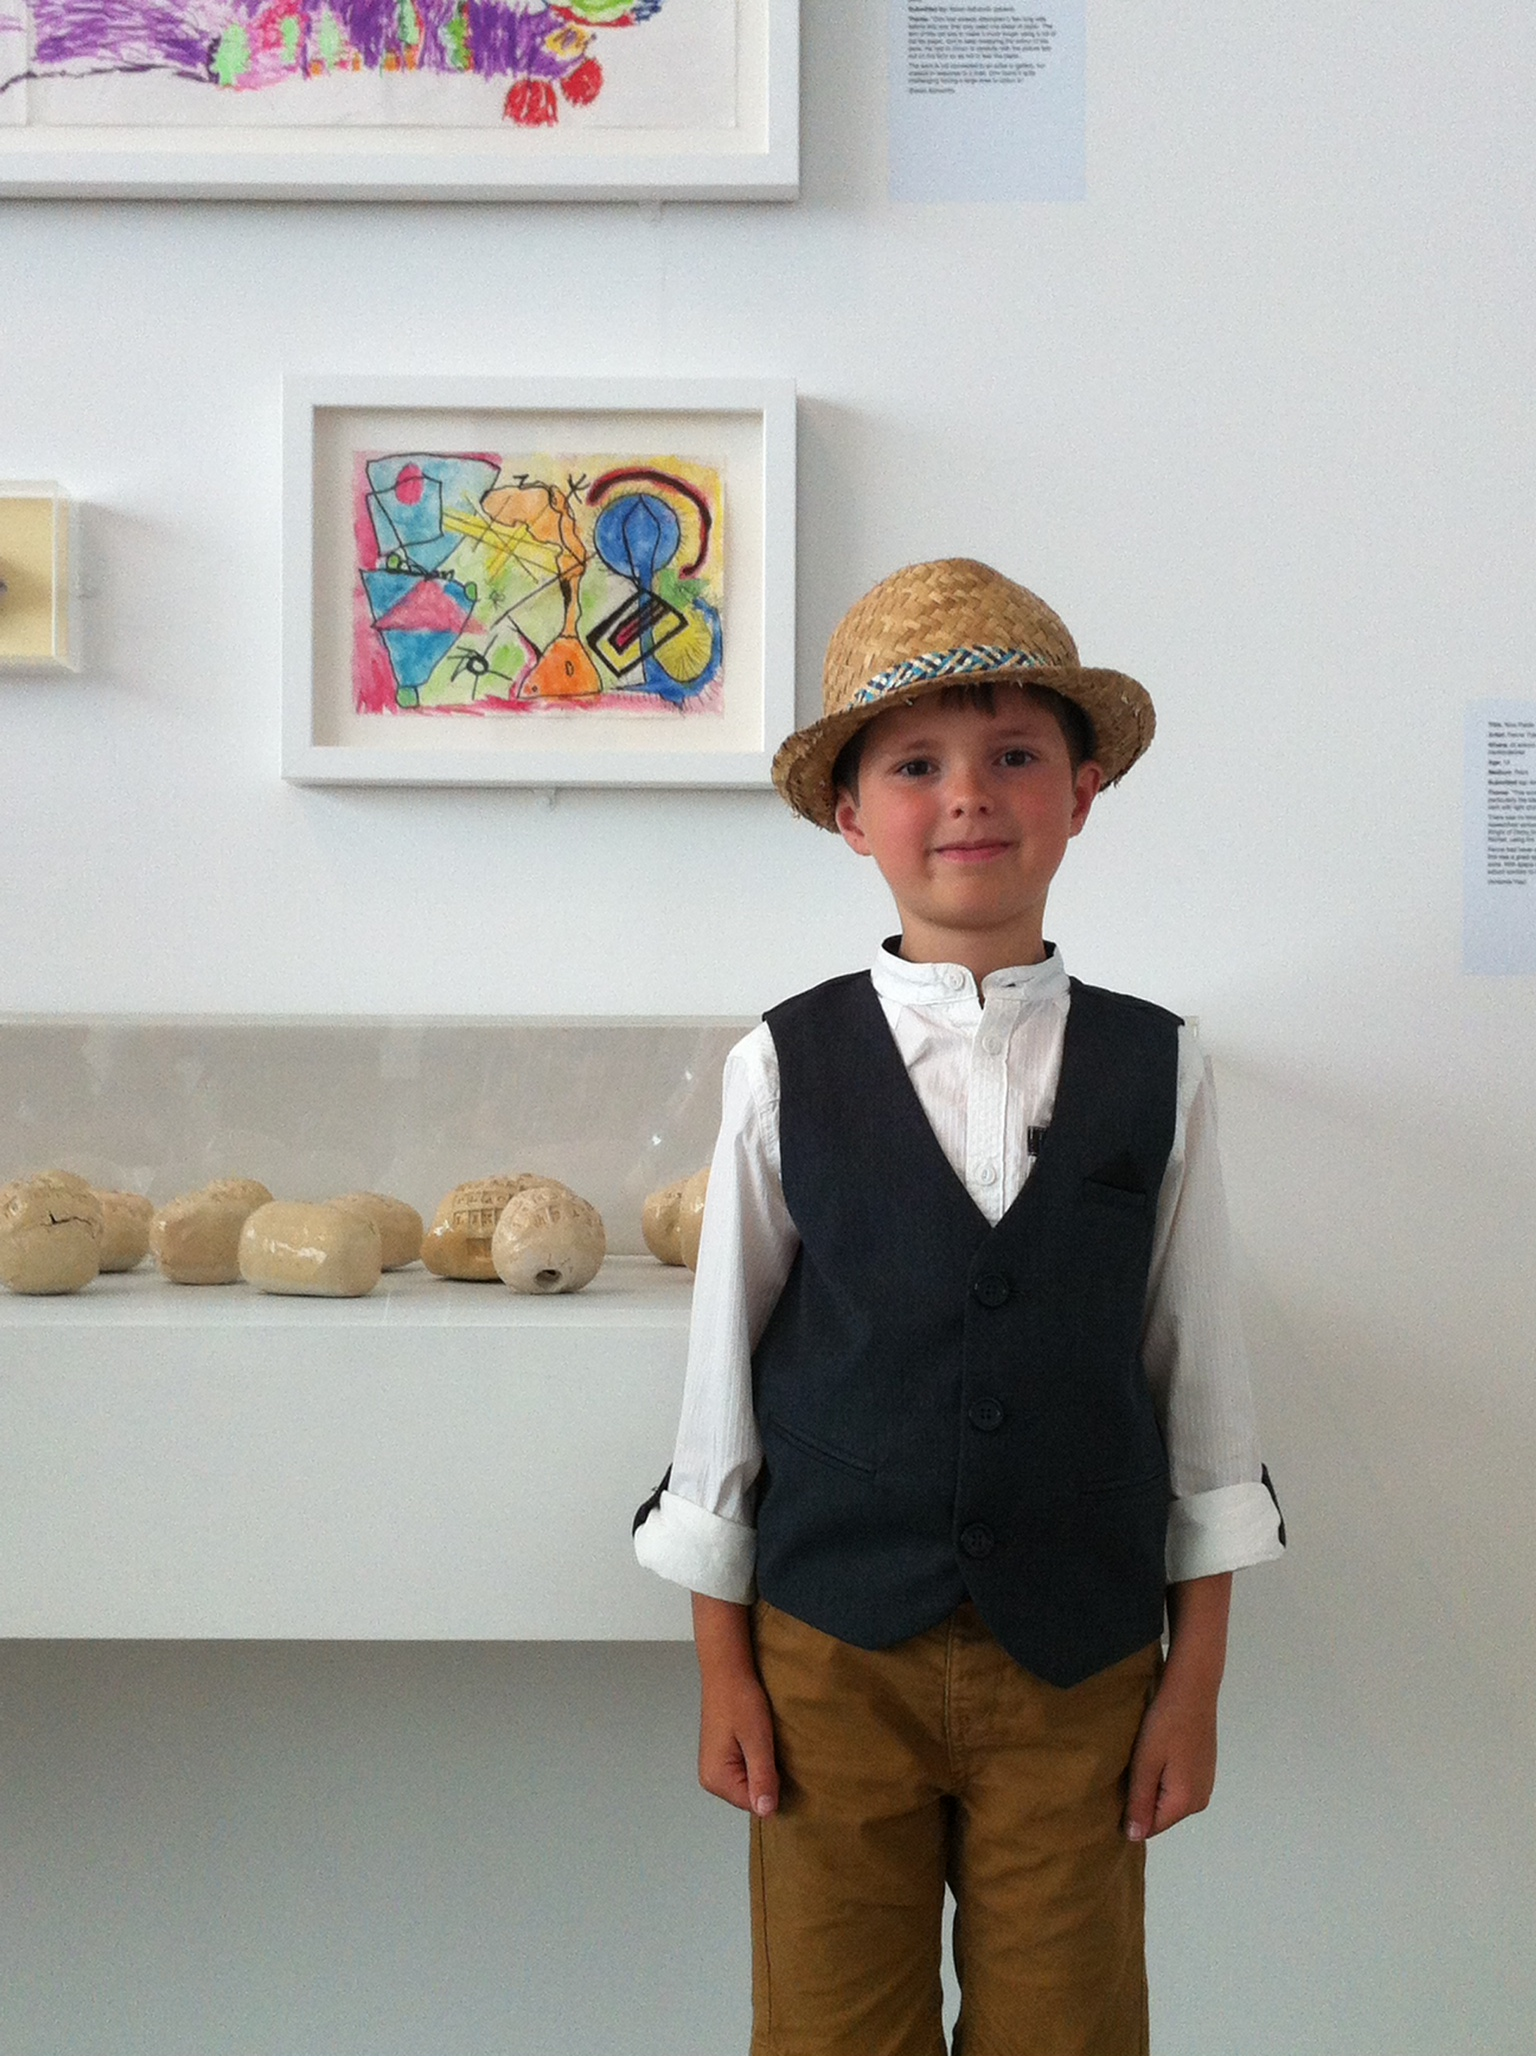 Generation ART exhibitor Conner Brett